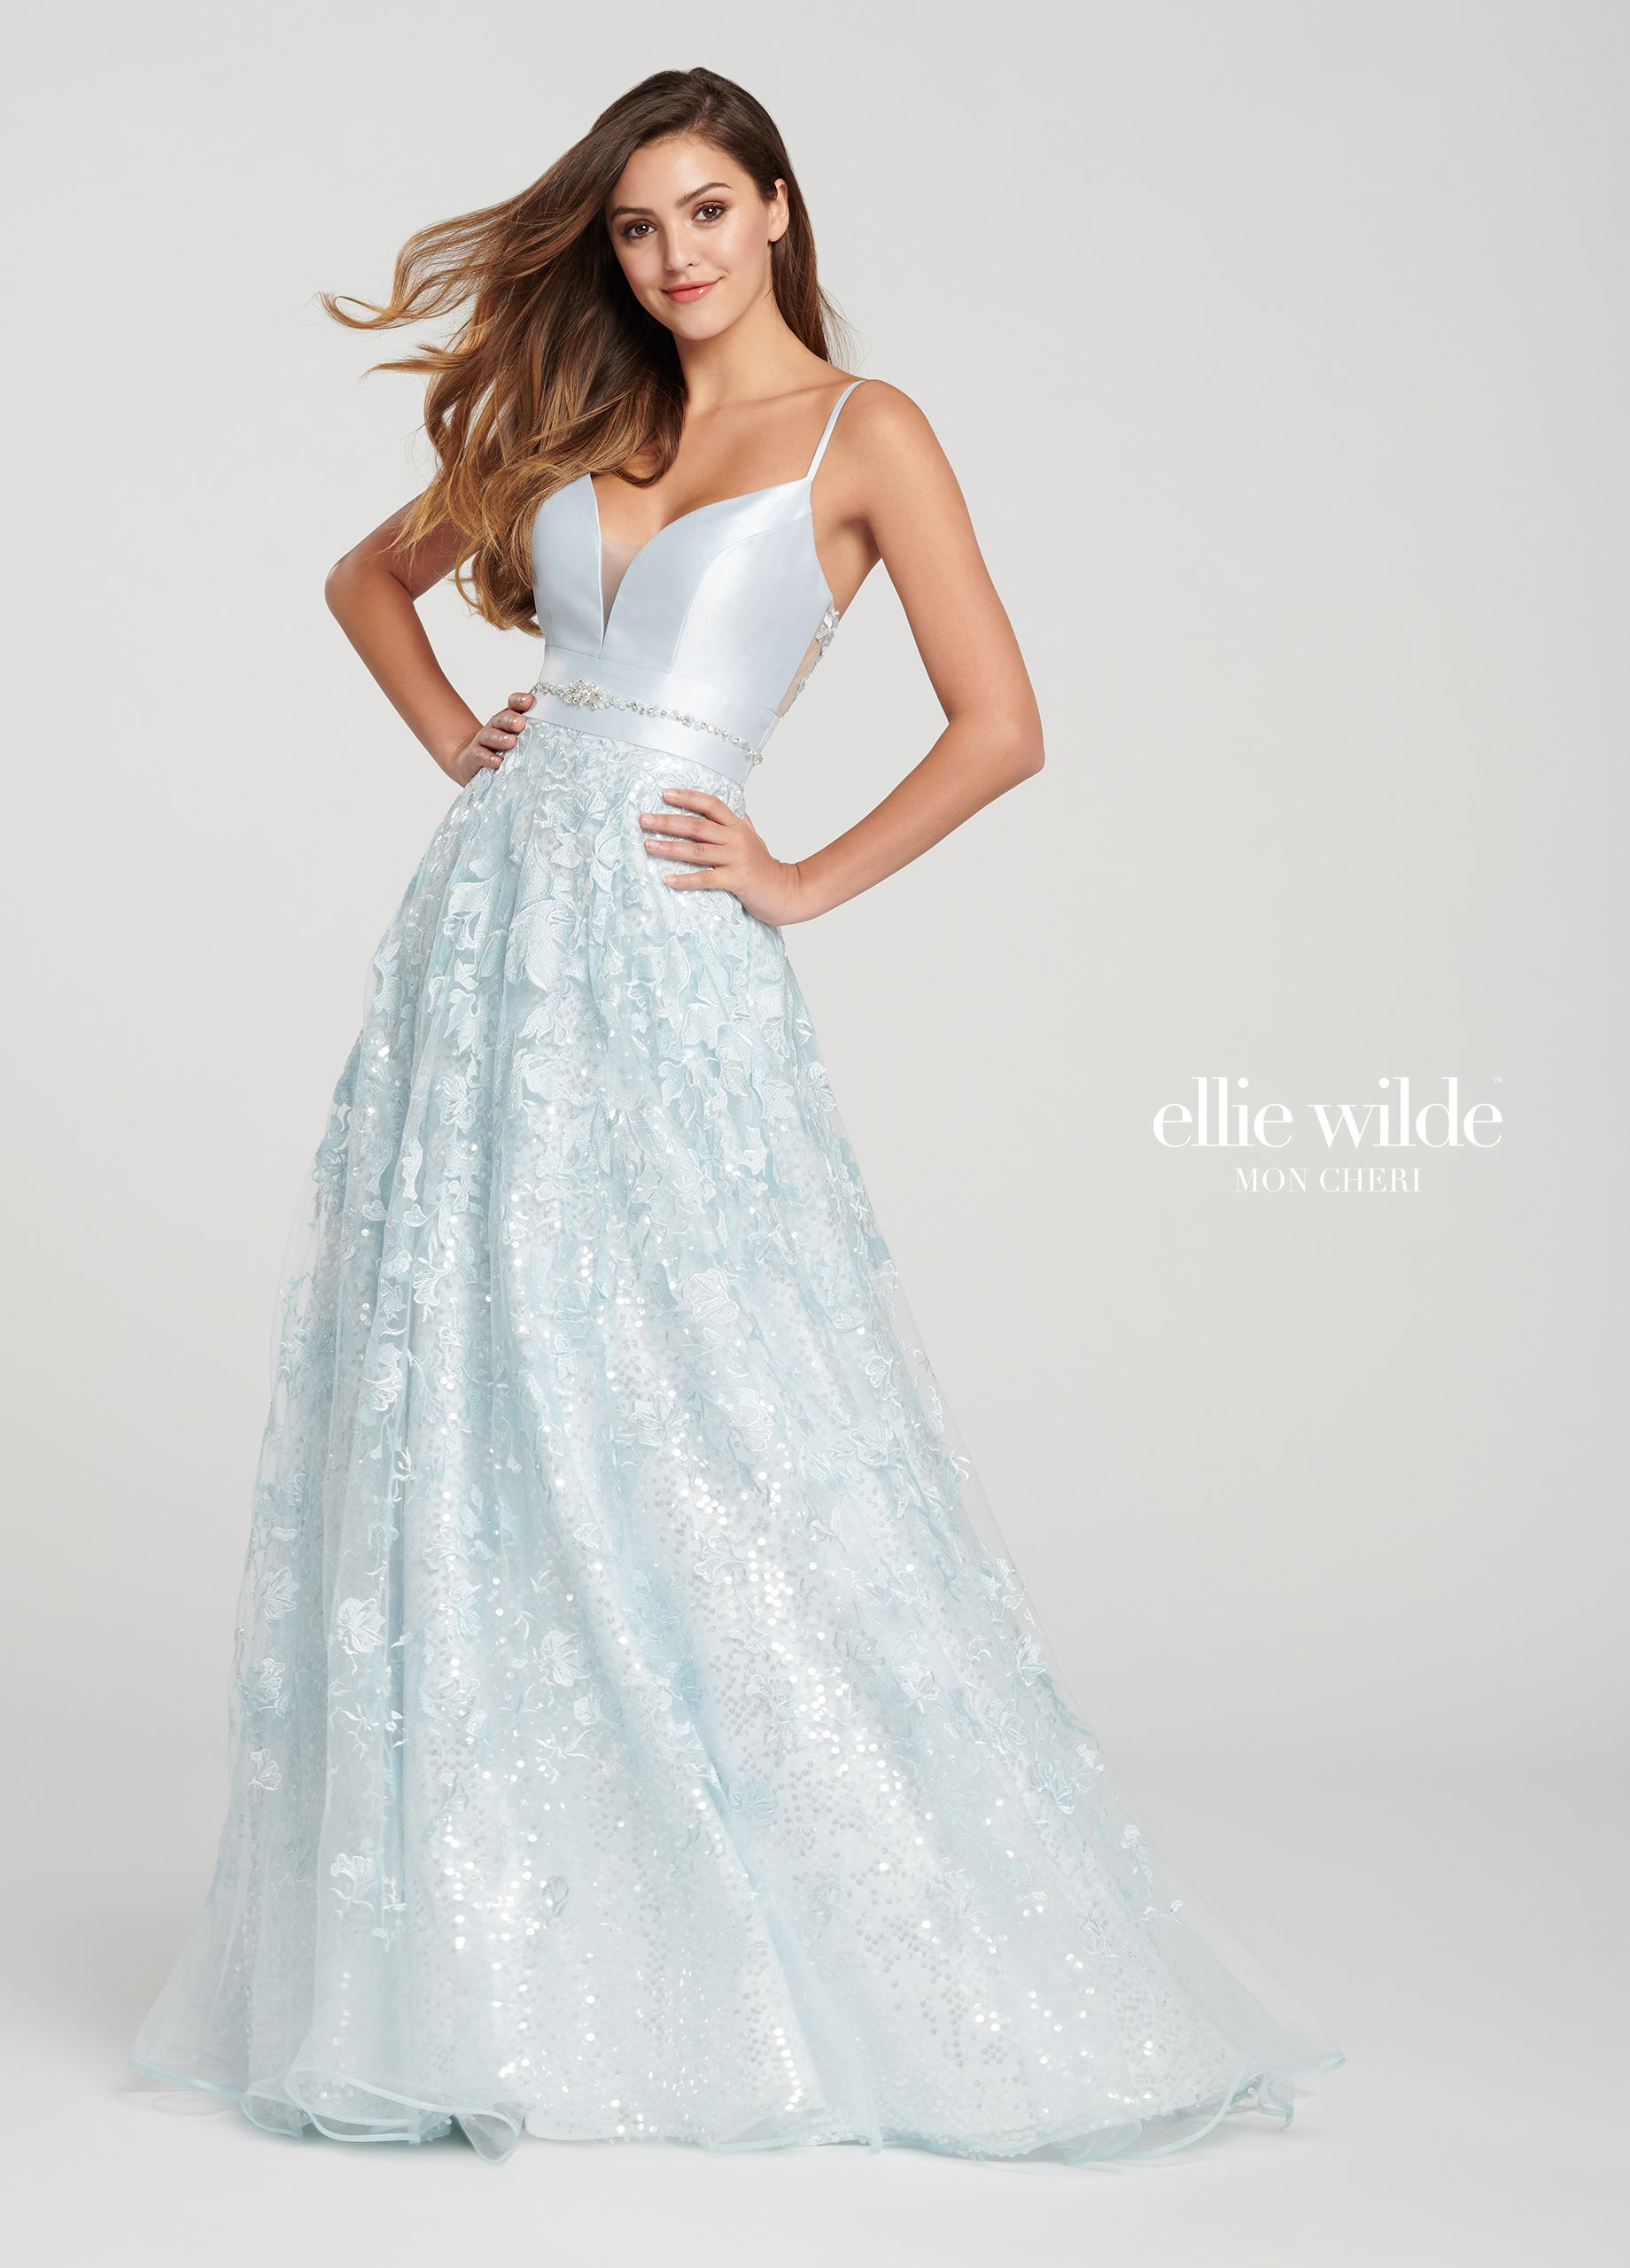 a6f3a2355d4 A-Line Prom Dress with a Mikado Bodice   Lace Skirt- EW119005 in ...